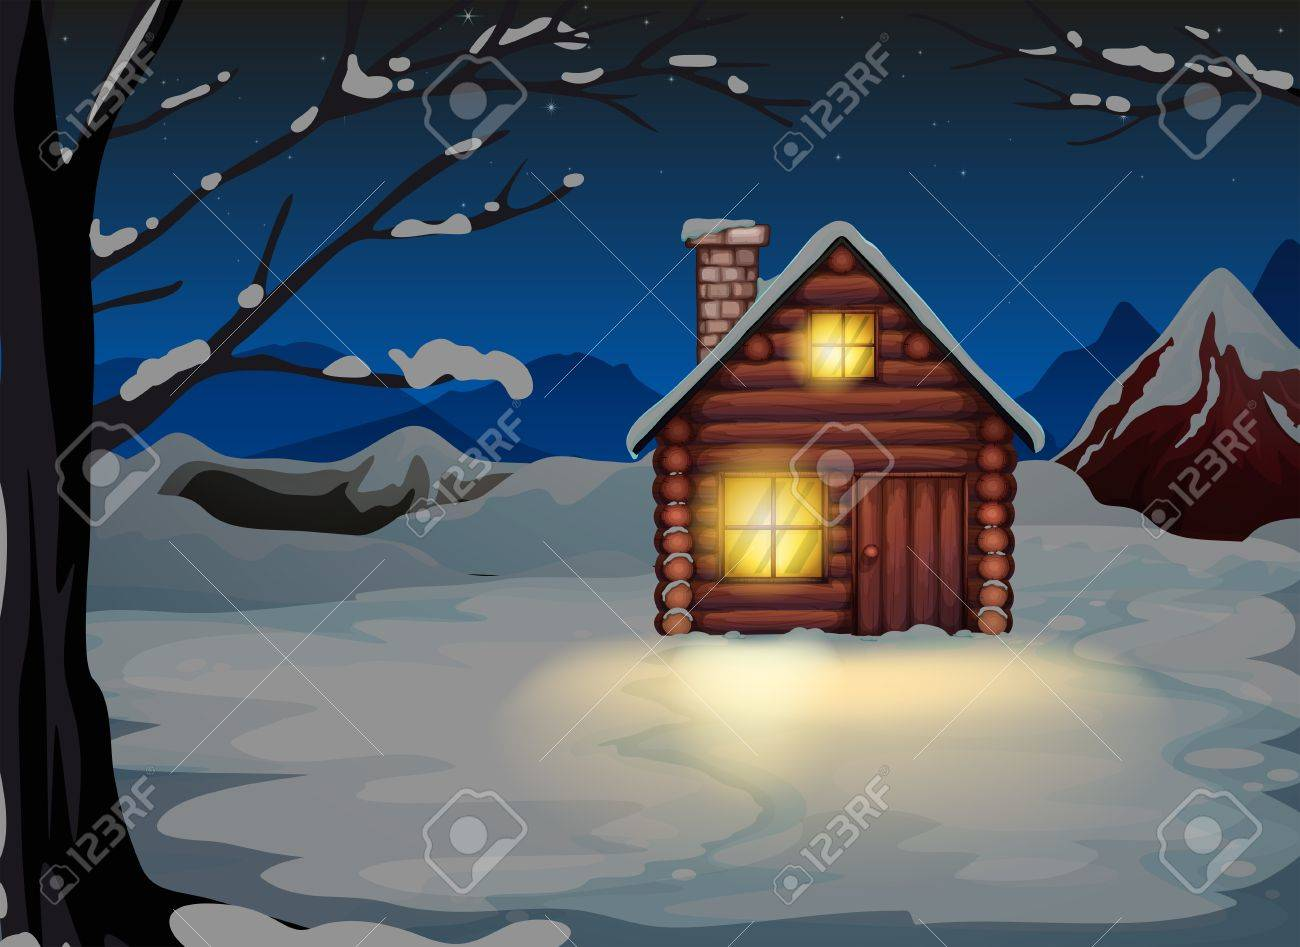 Illustration of a lighted log house at the snowy land Stock Vector - 20518317